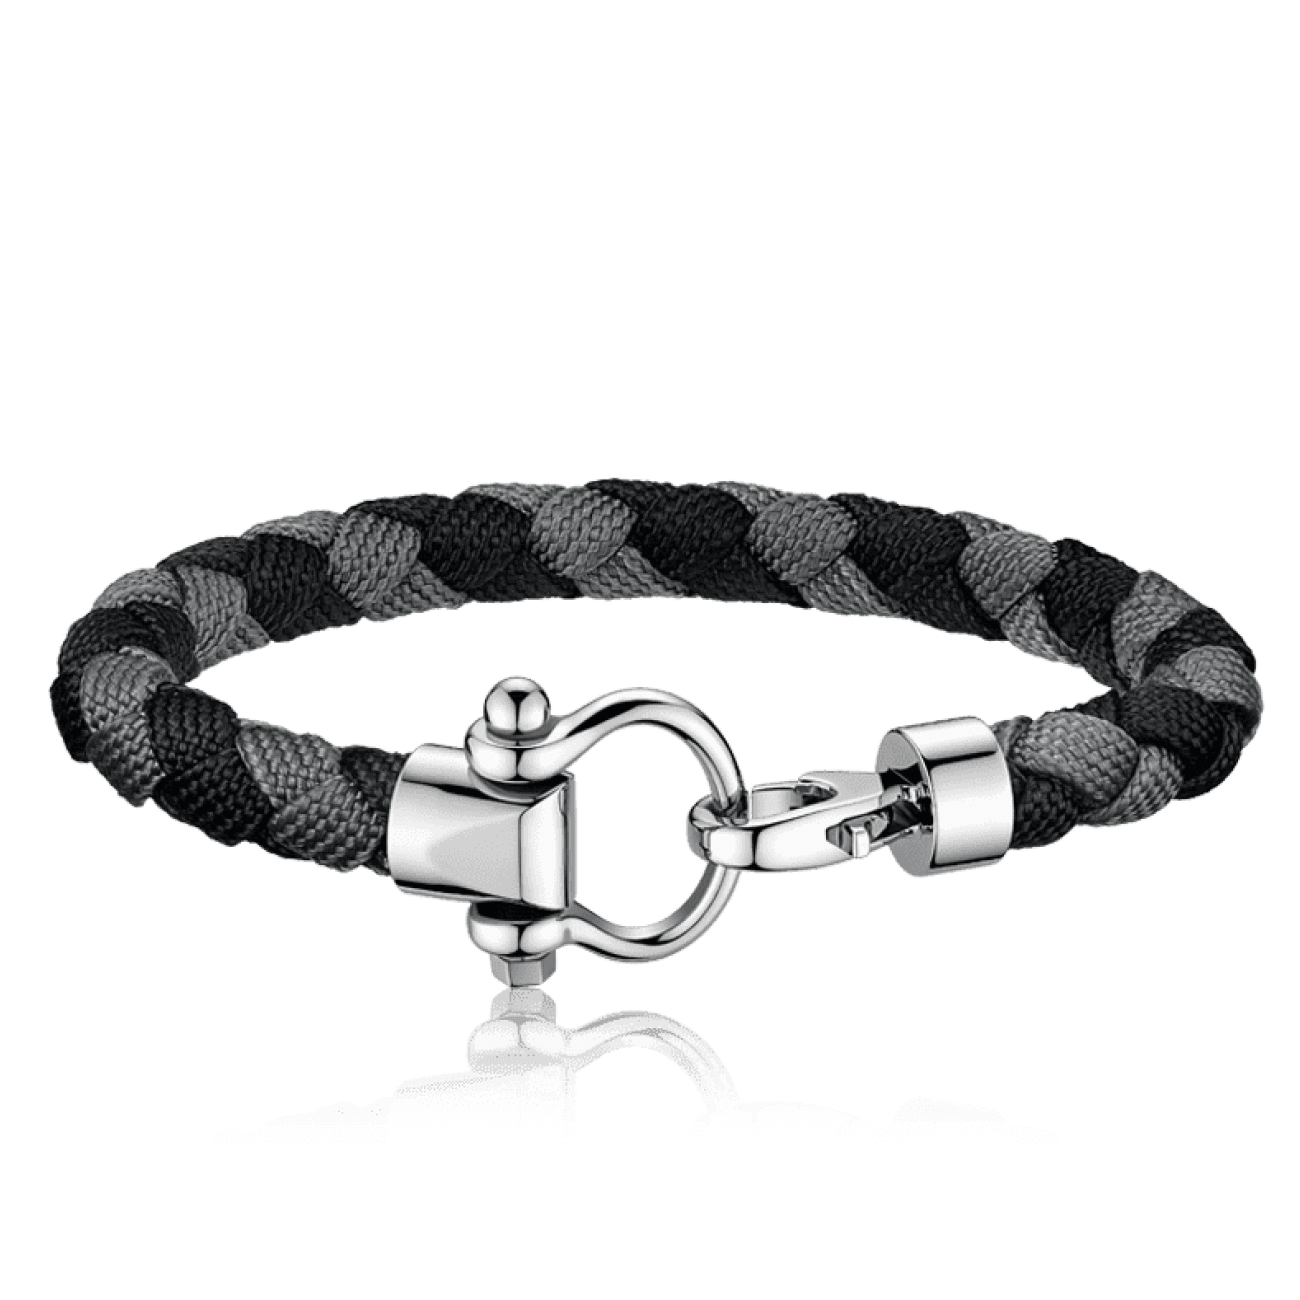 Omega Accessories - Sailing bracelet in stainless steel black and grey braided nylon | Manfredi Jewels